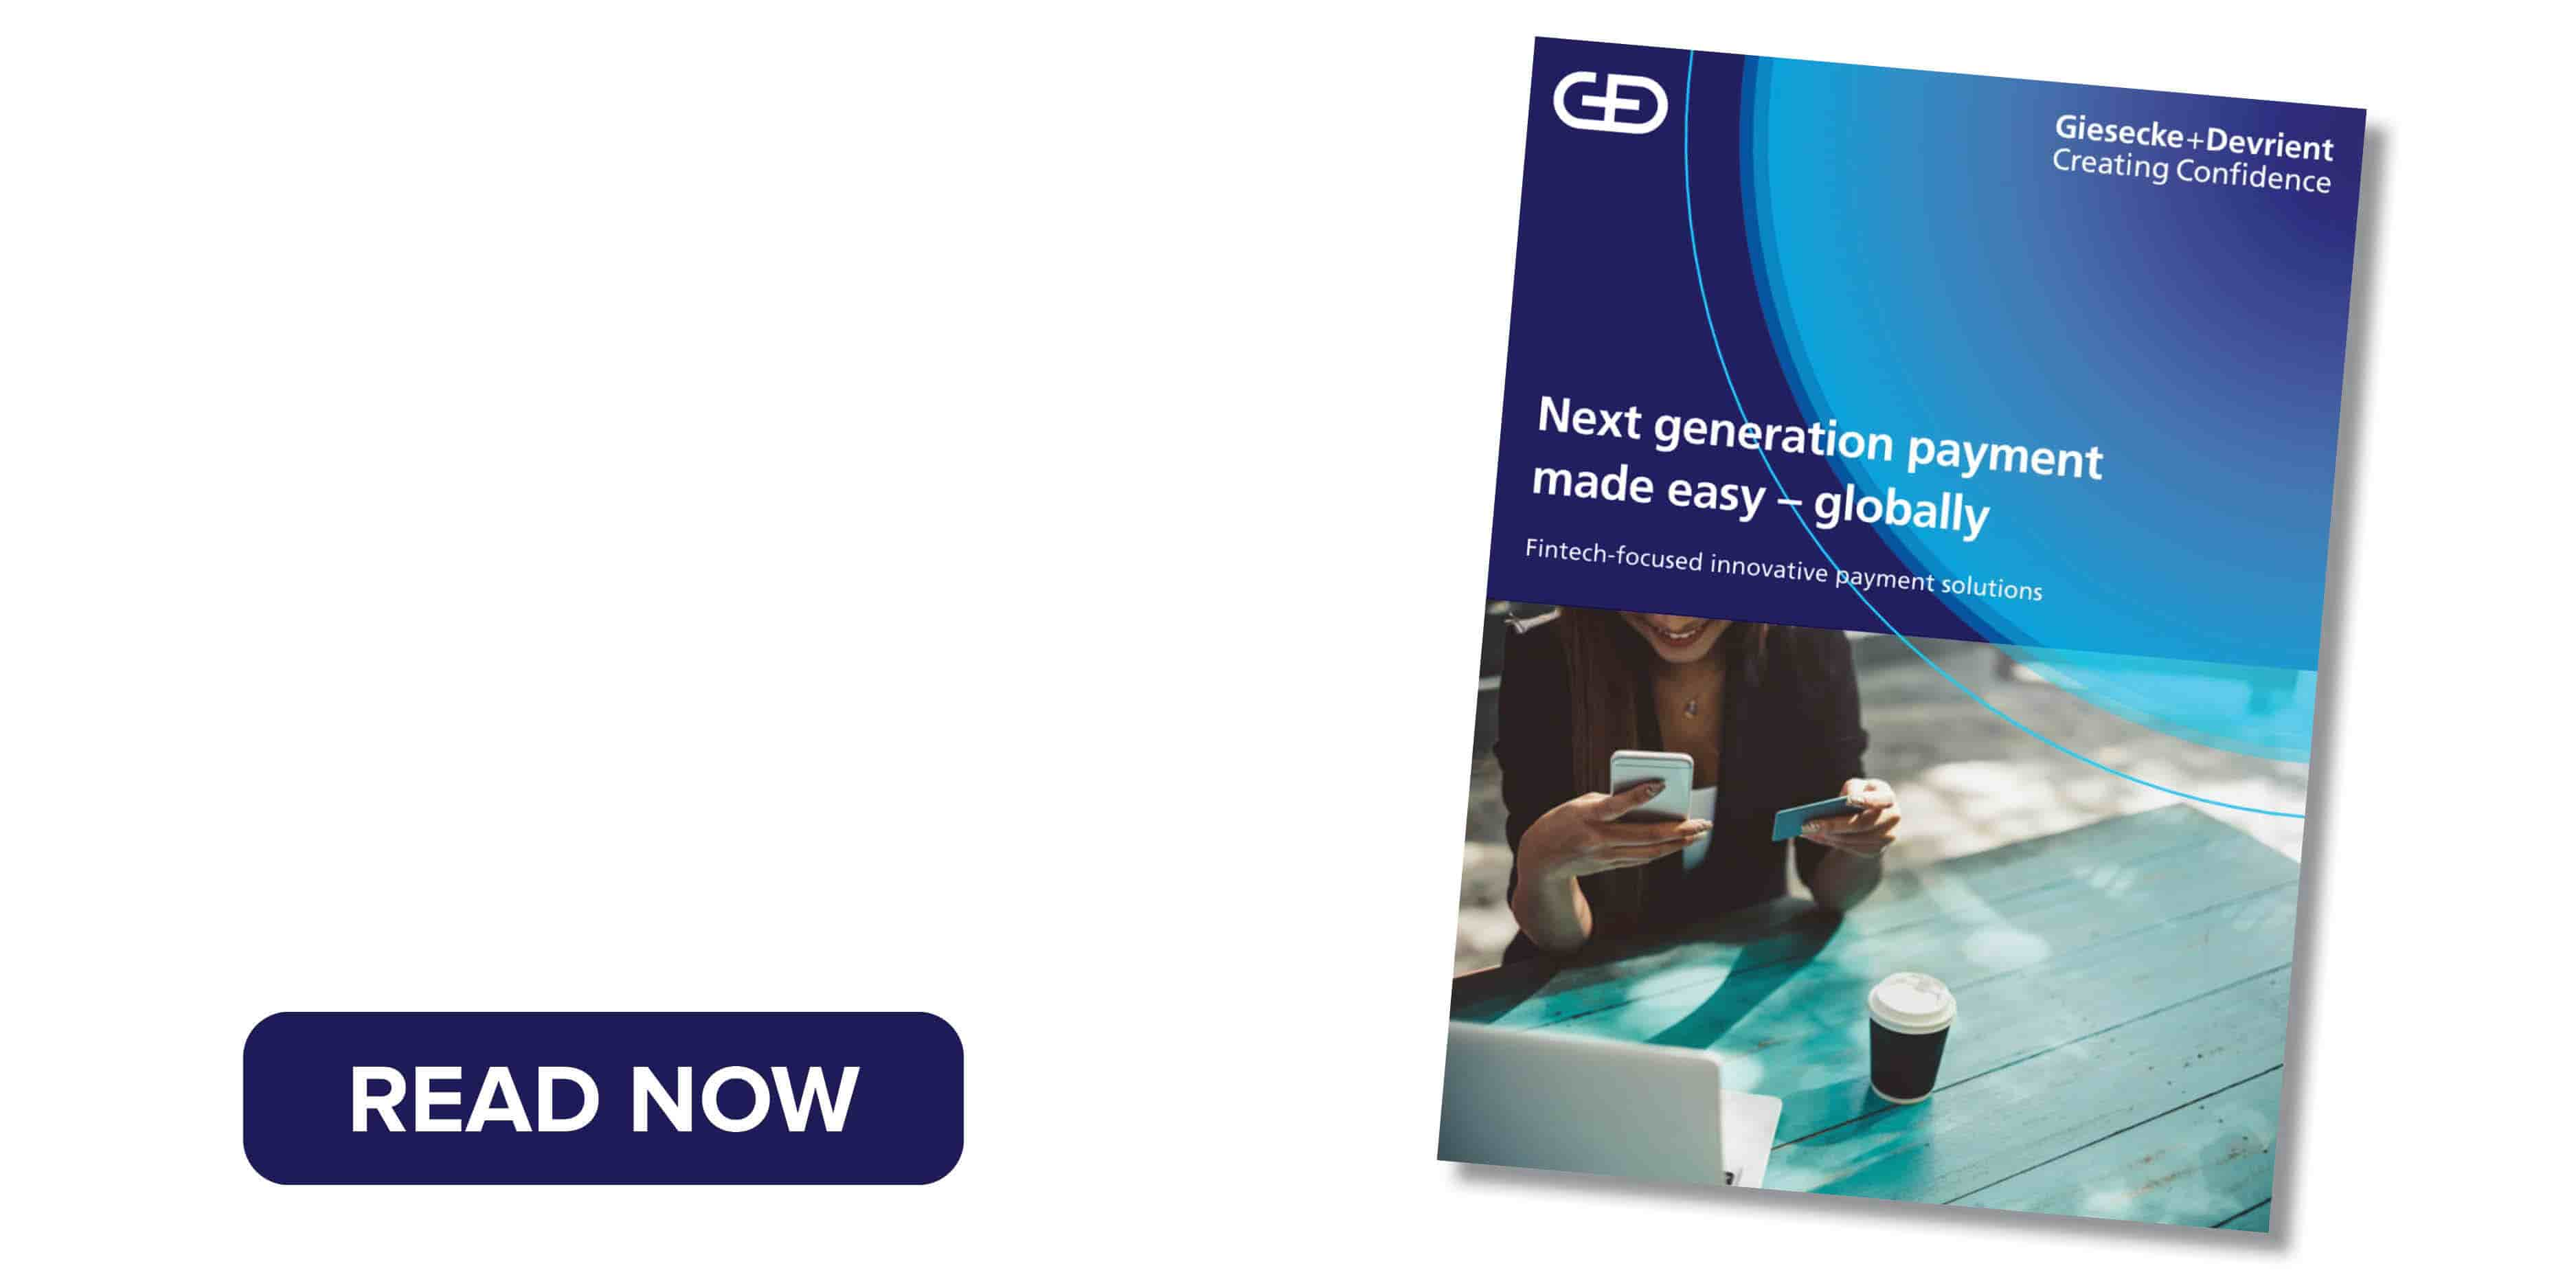 next generation payment made easy globally